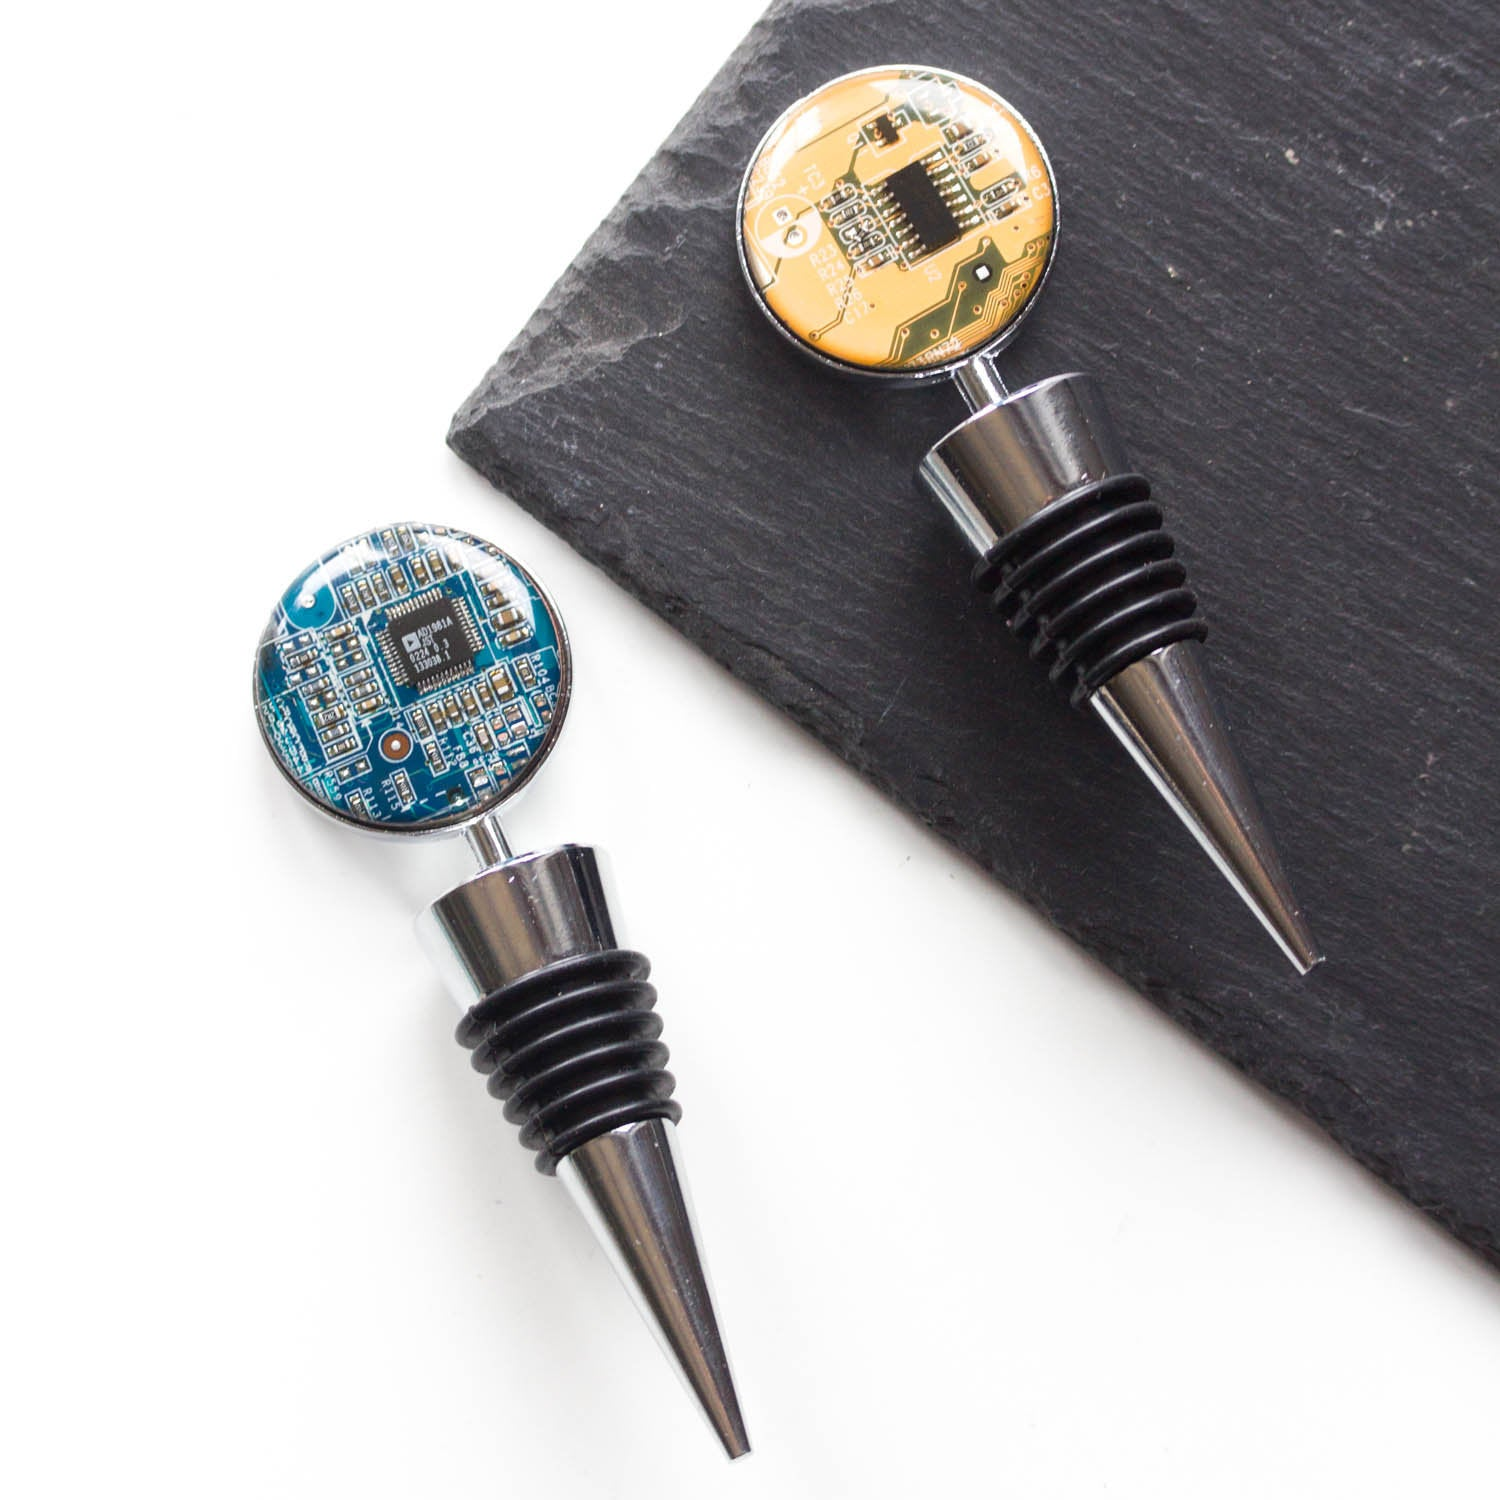 Wine Bottle stopper with a circuit board piece, groomsmen gift